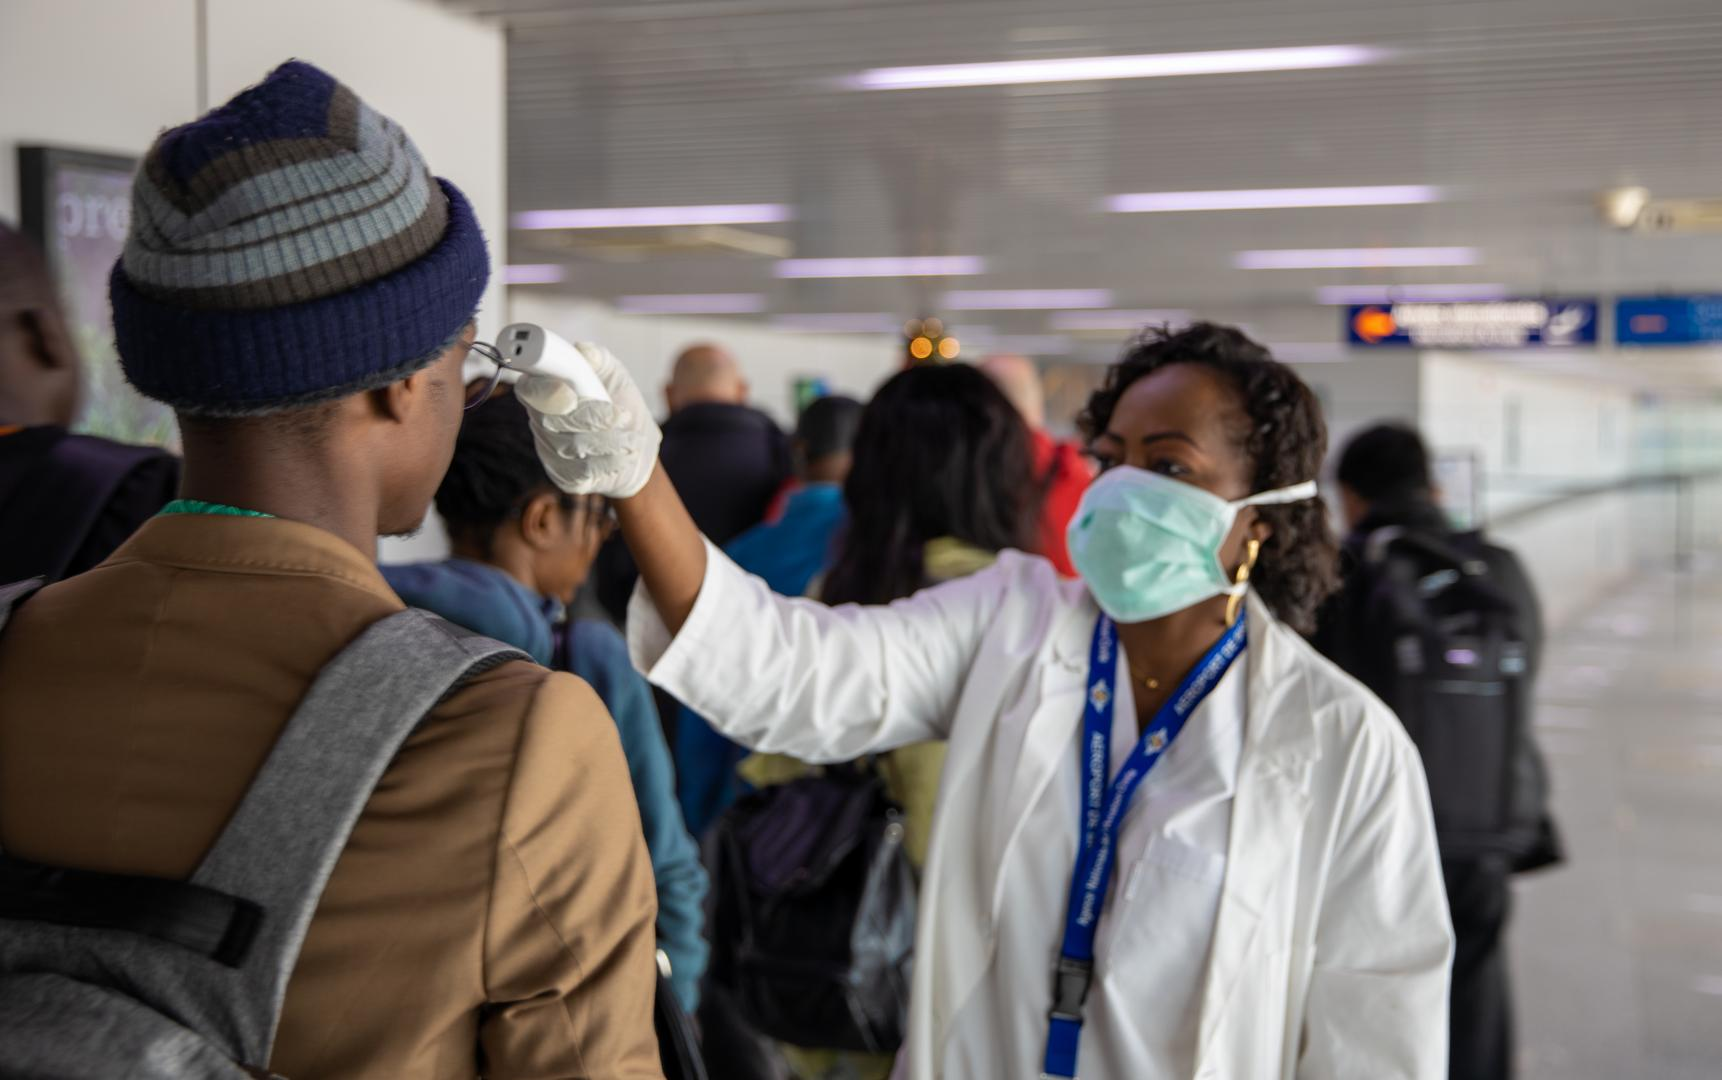 Latest updates on Coronavirus (COVID-19): South Africa and Cameroon confirm first cases - Ventures Africa